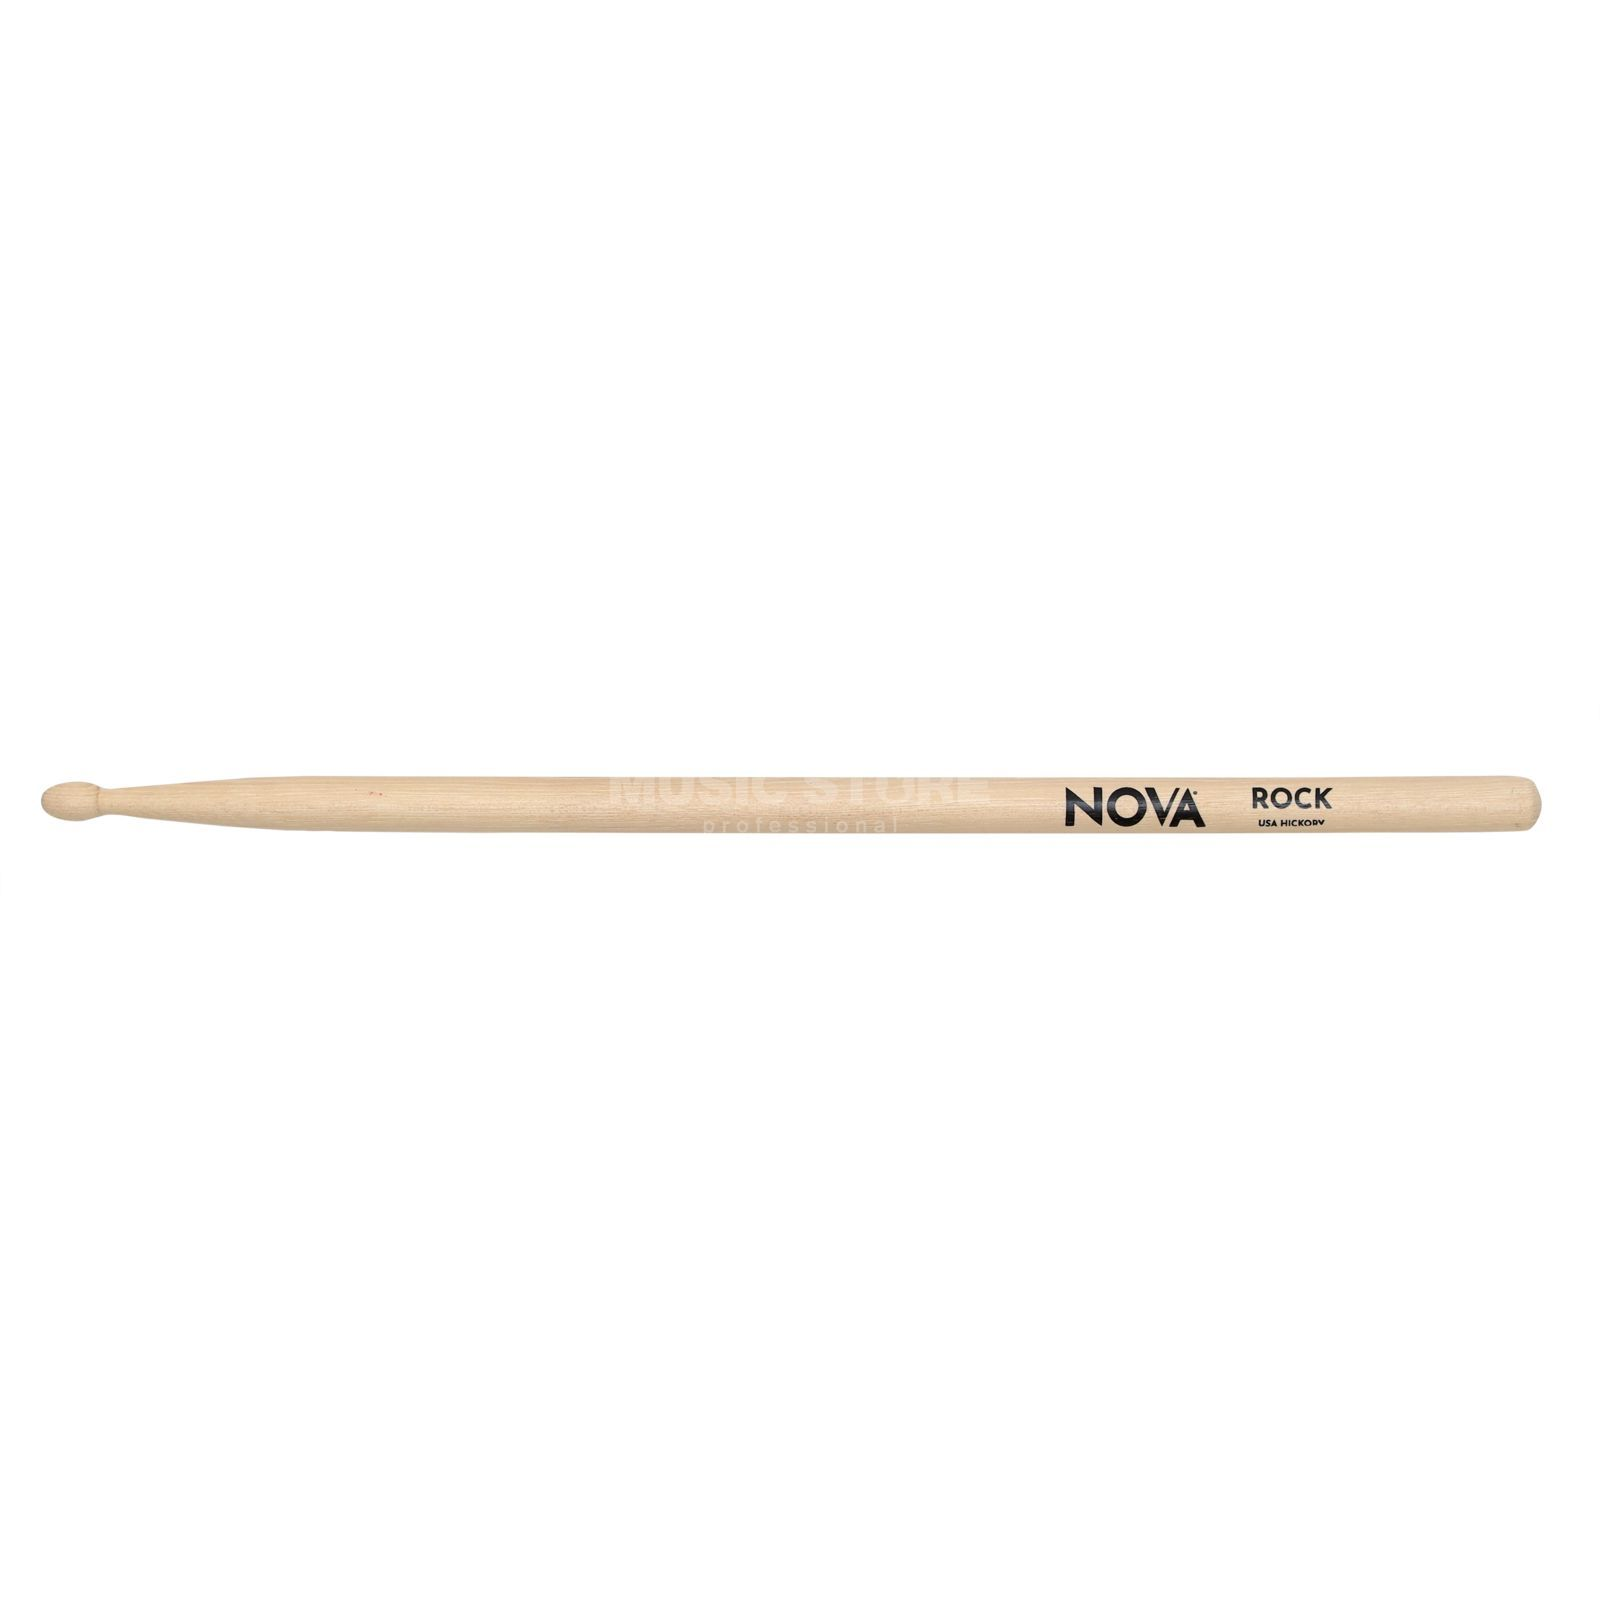 Vic-Firth Nova Drum Sticks ROCK, Wood Tip Produktbild